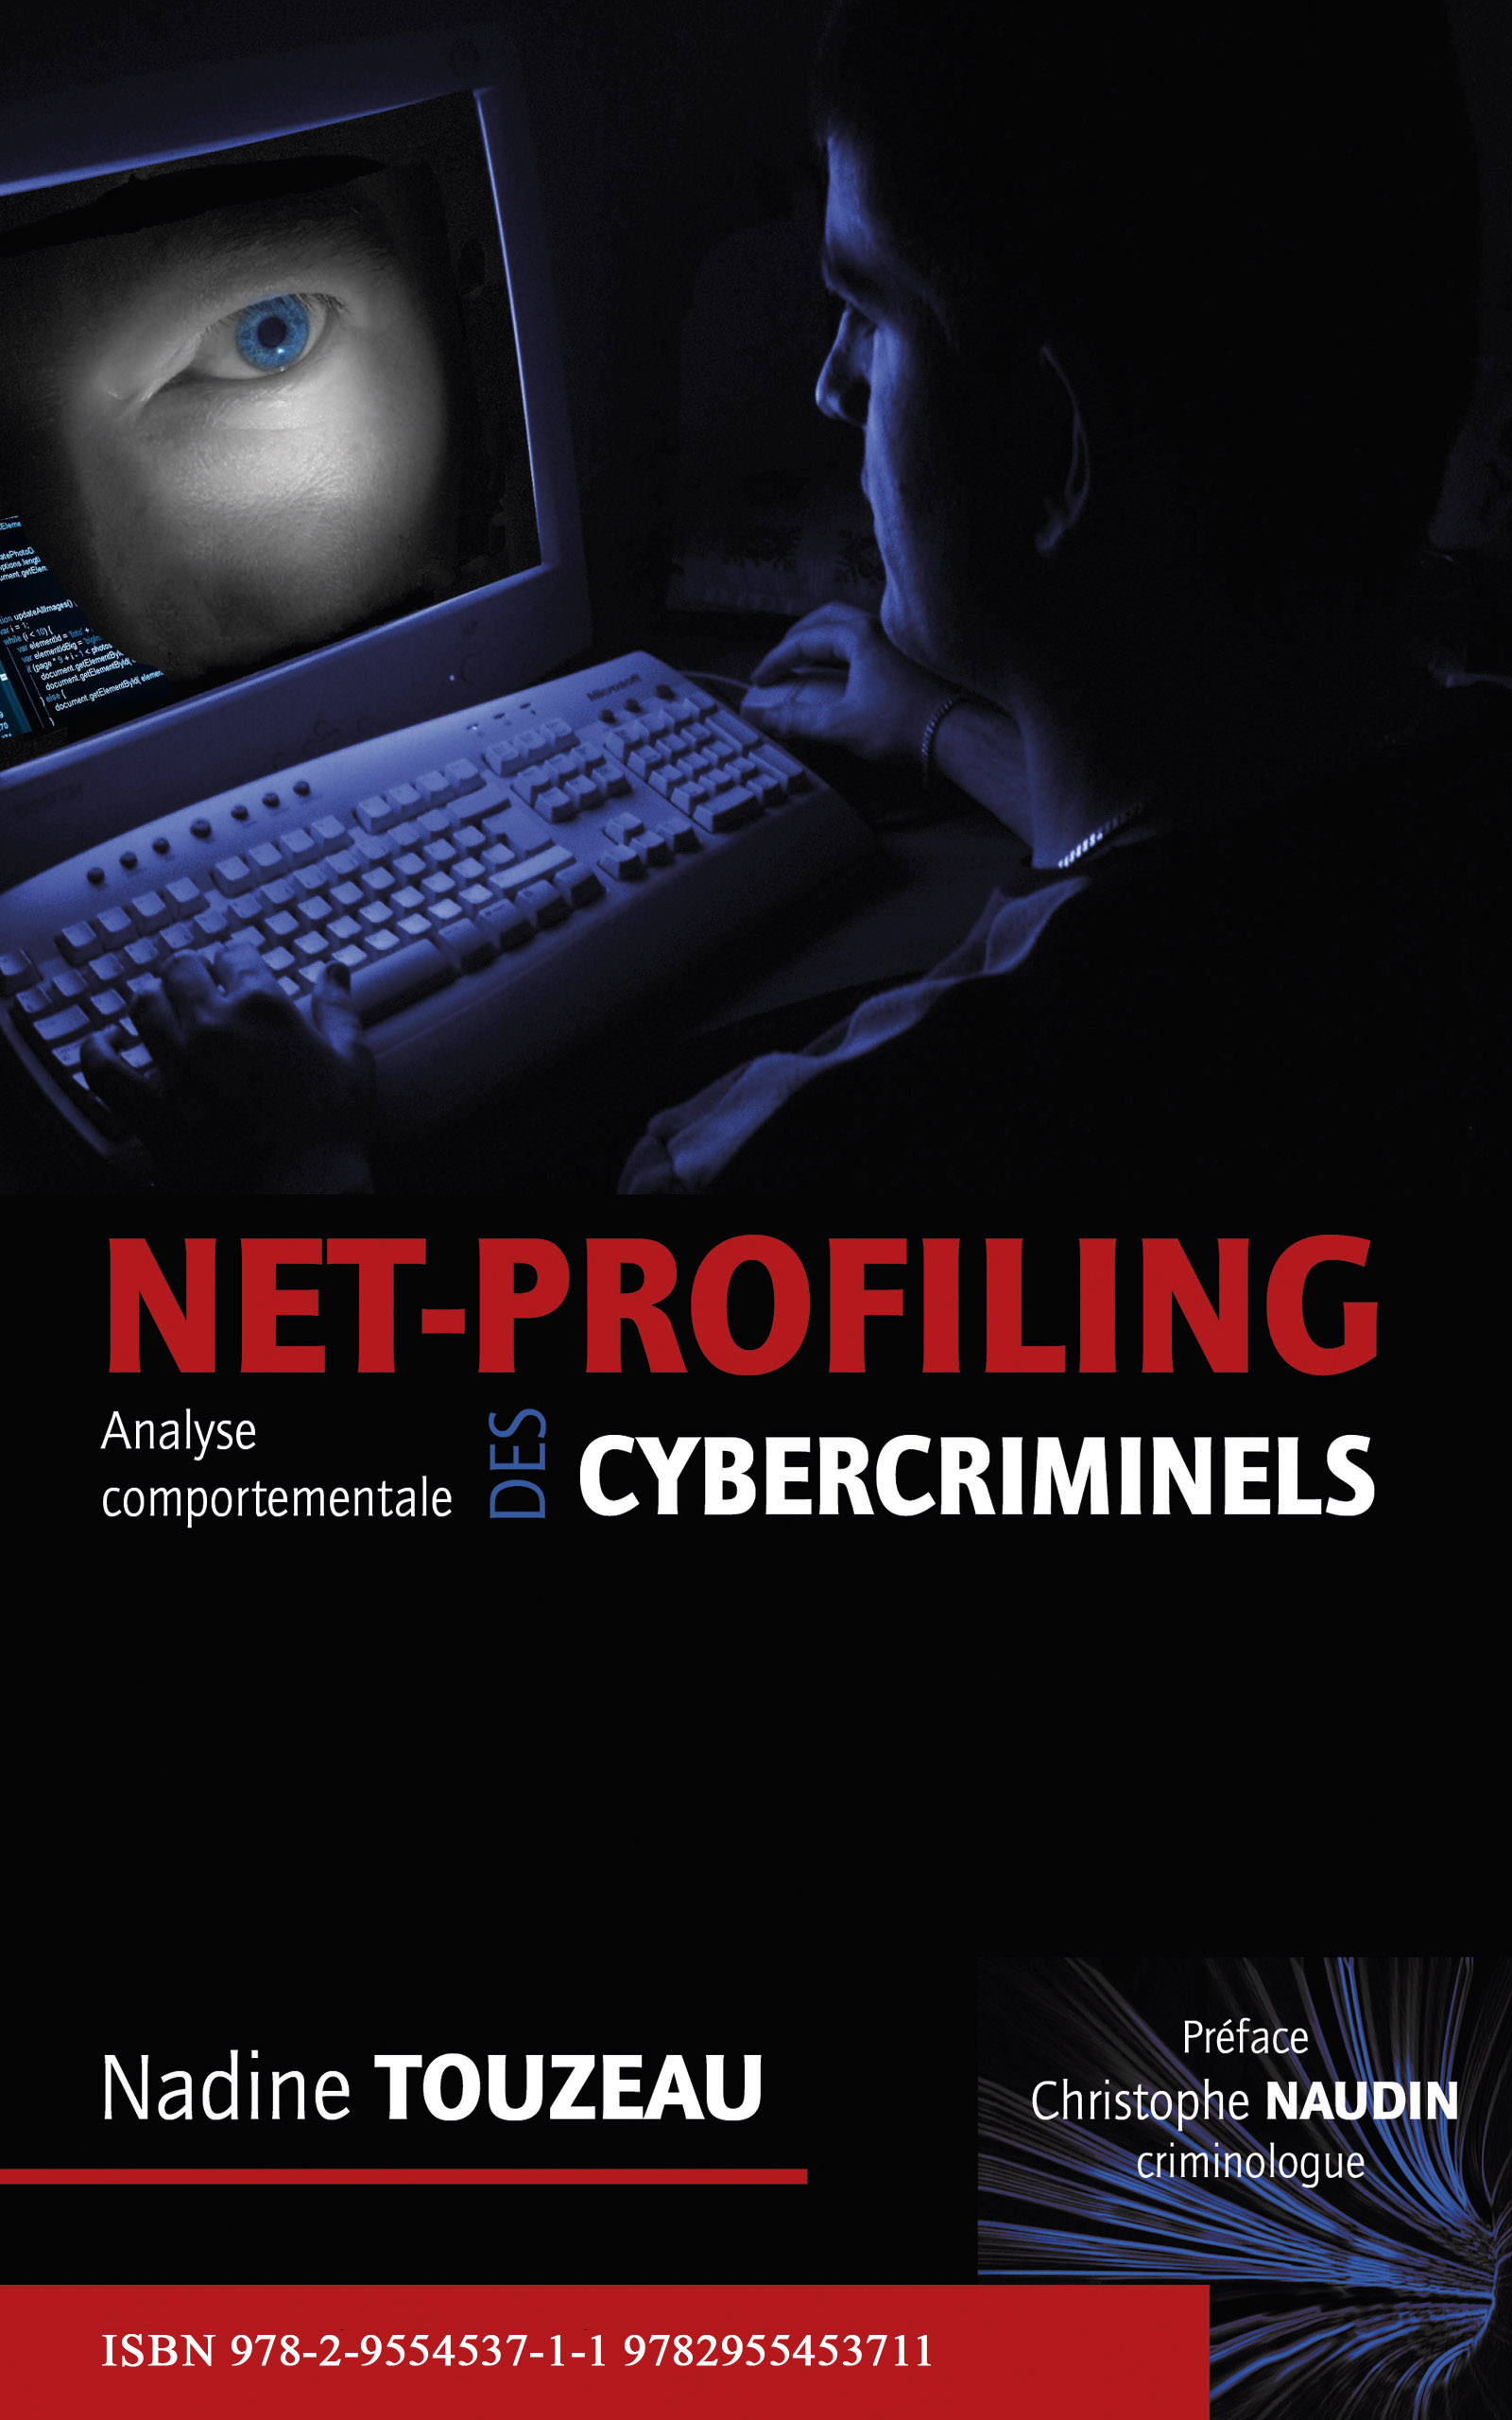 NET-PROFILING--Analyse-du-comportement-des-cybercriminels-NADINE-TOUZEAU---COUVERTURE-FACE-USB.jpg